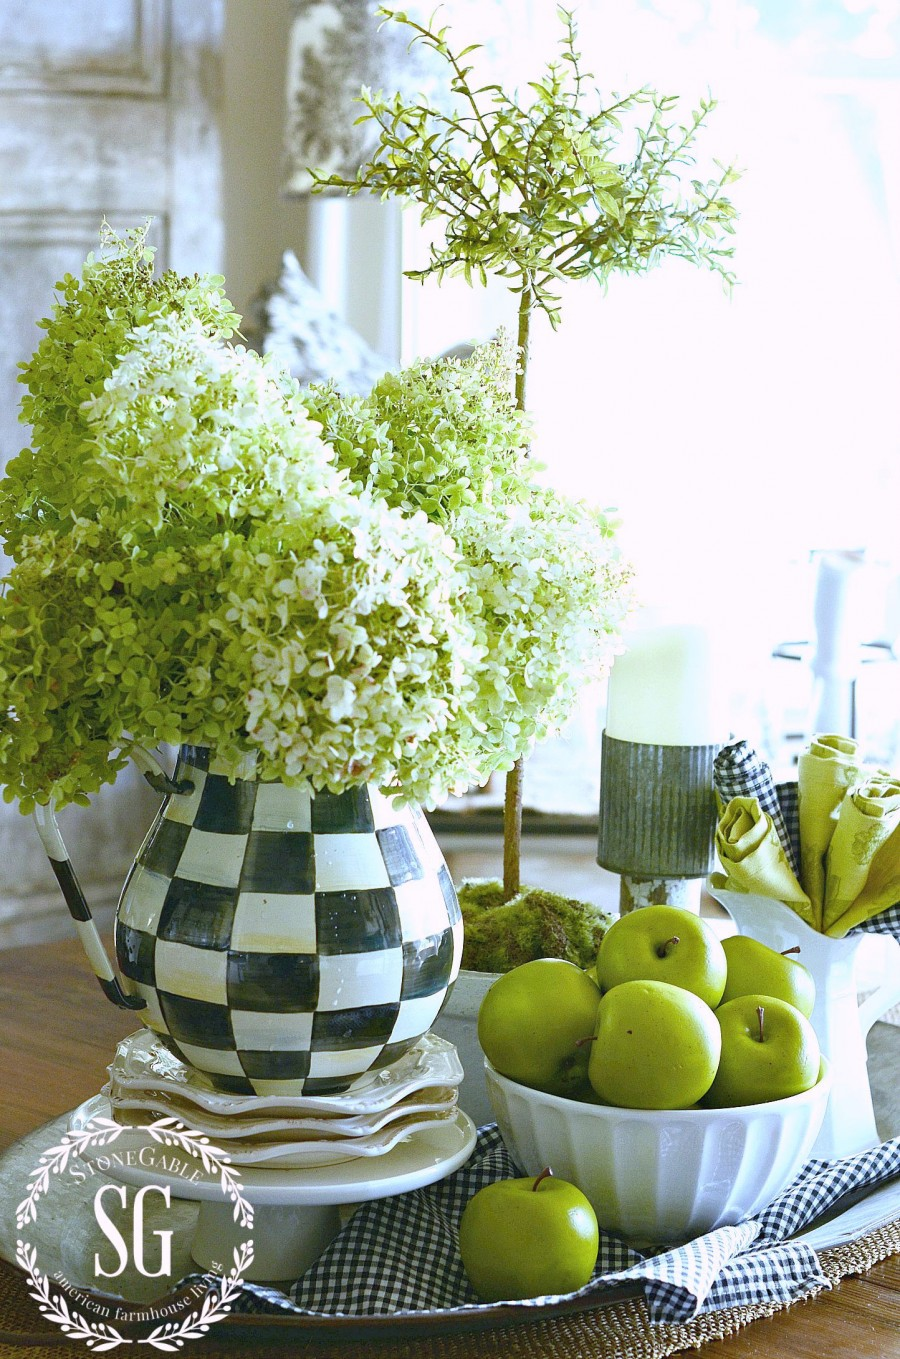 EARLY FALL AND GREEN APPLES-perfect for fall-stonegableblog.com